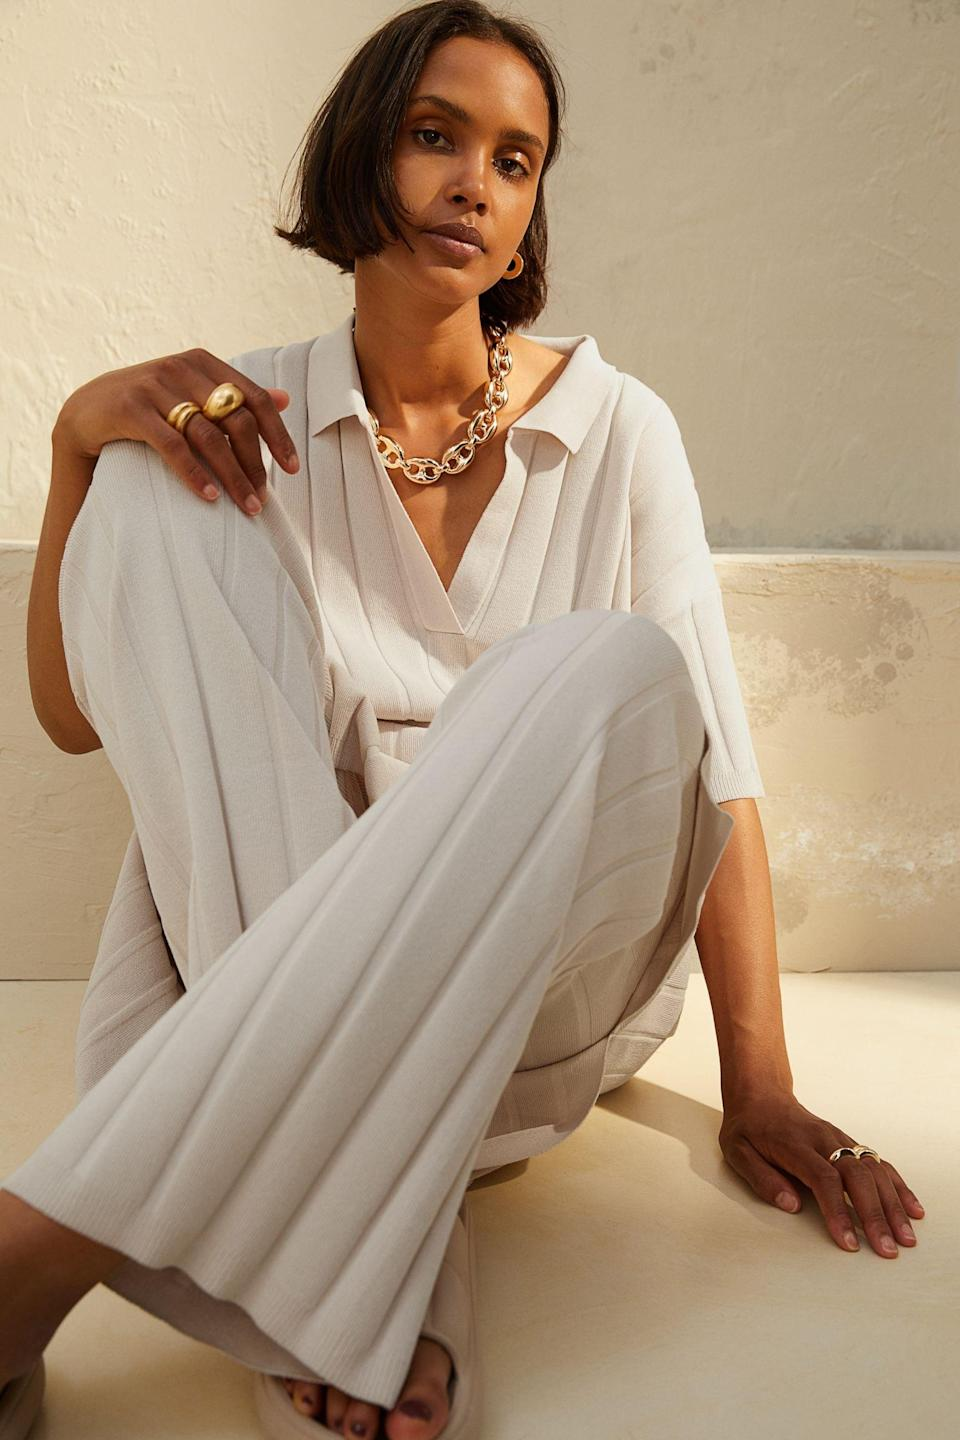 <p>We can't unsee this look, which features these flowy yet polished <span>Rib-Knit Pants</span> ($21, originally $25). We'll definitely be grabbing the matching shirt and gold chain necklace to complete the ensemble.</p>